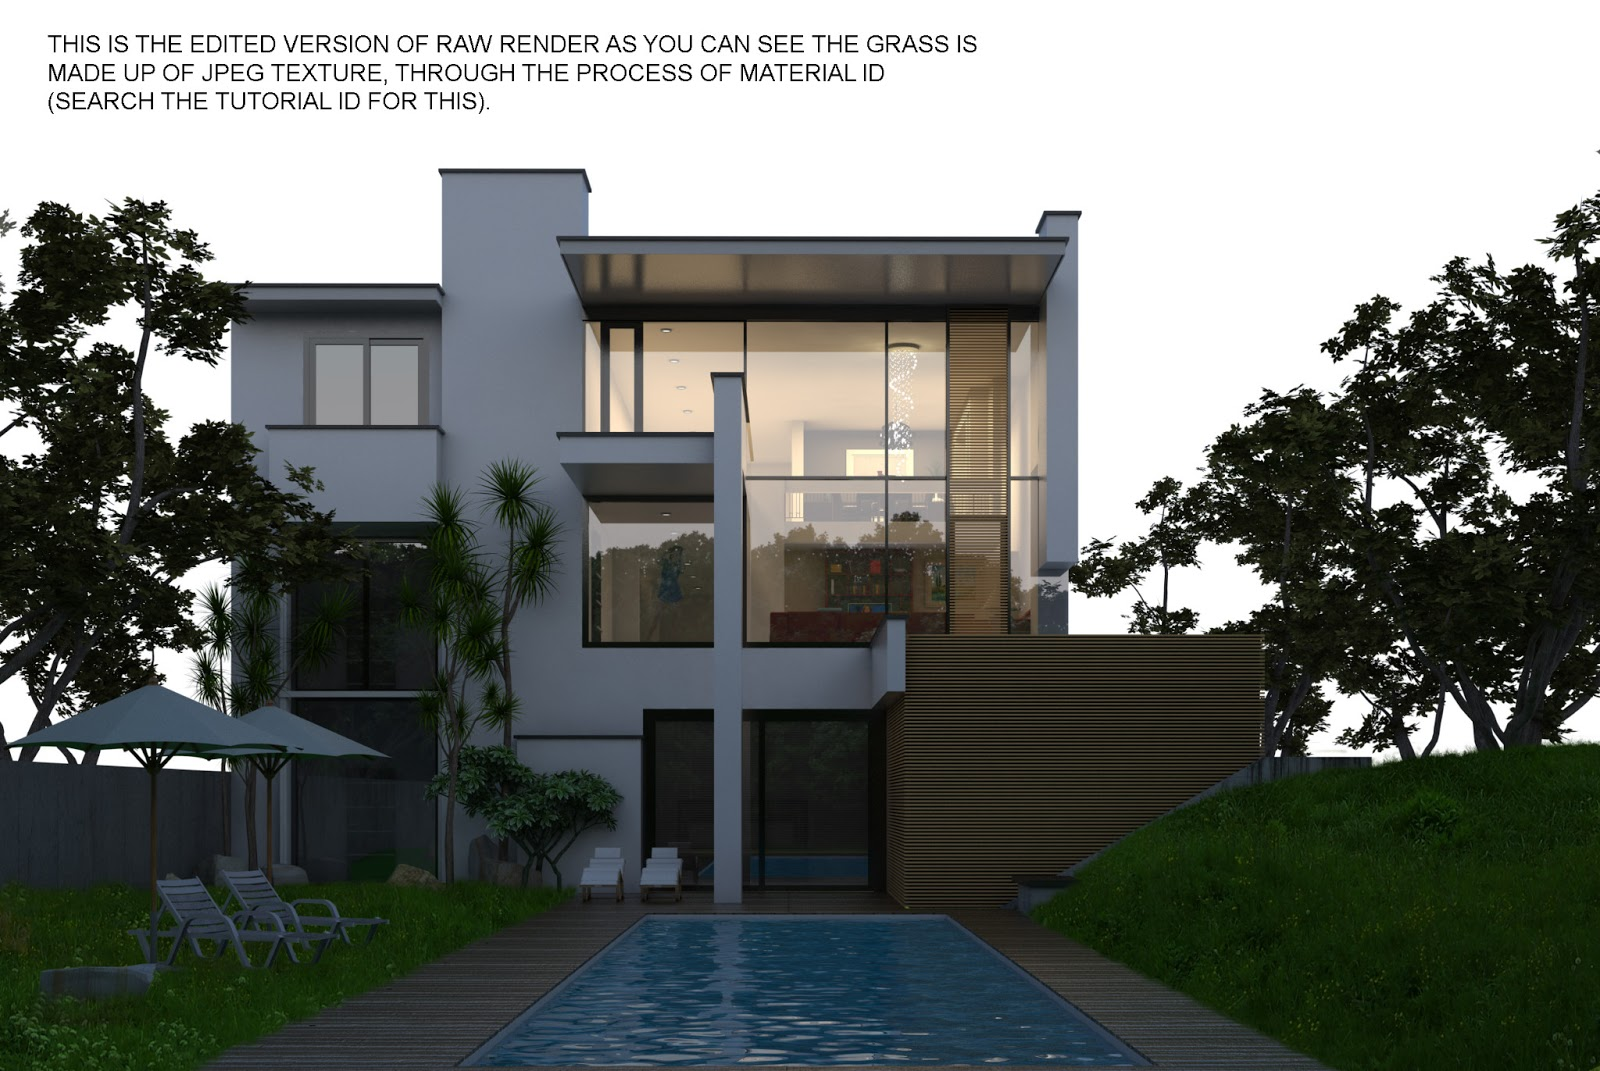 Sketchup Texture Vray Tutorial Exterior Night Scene 2